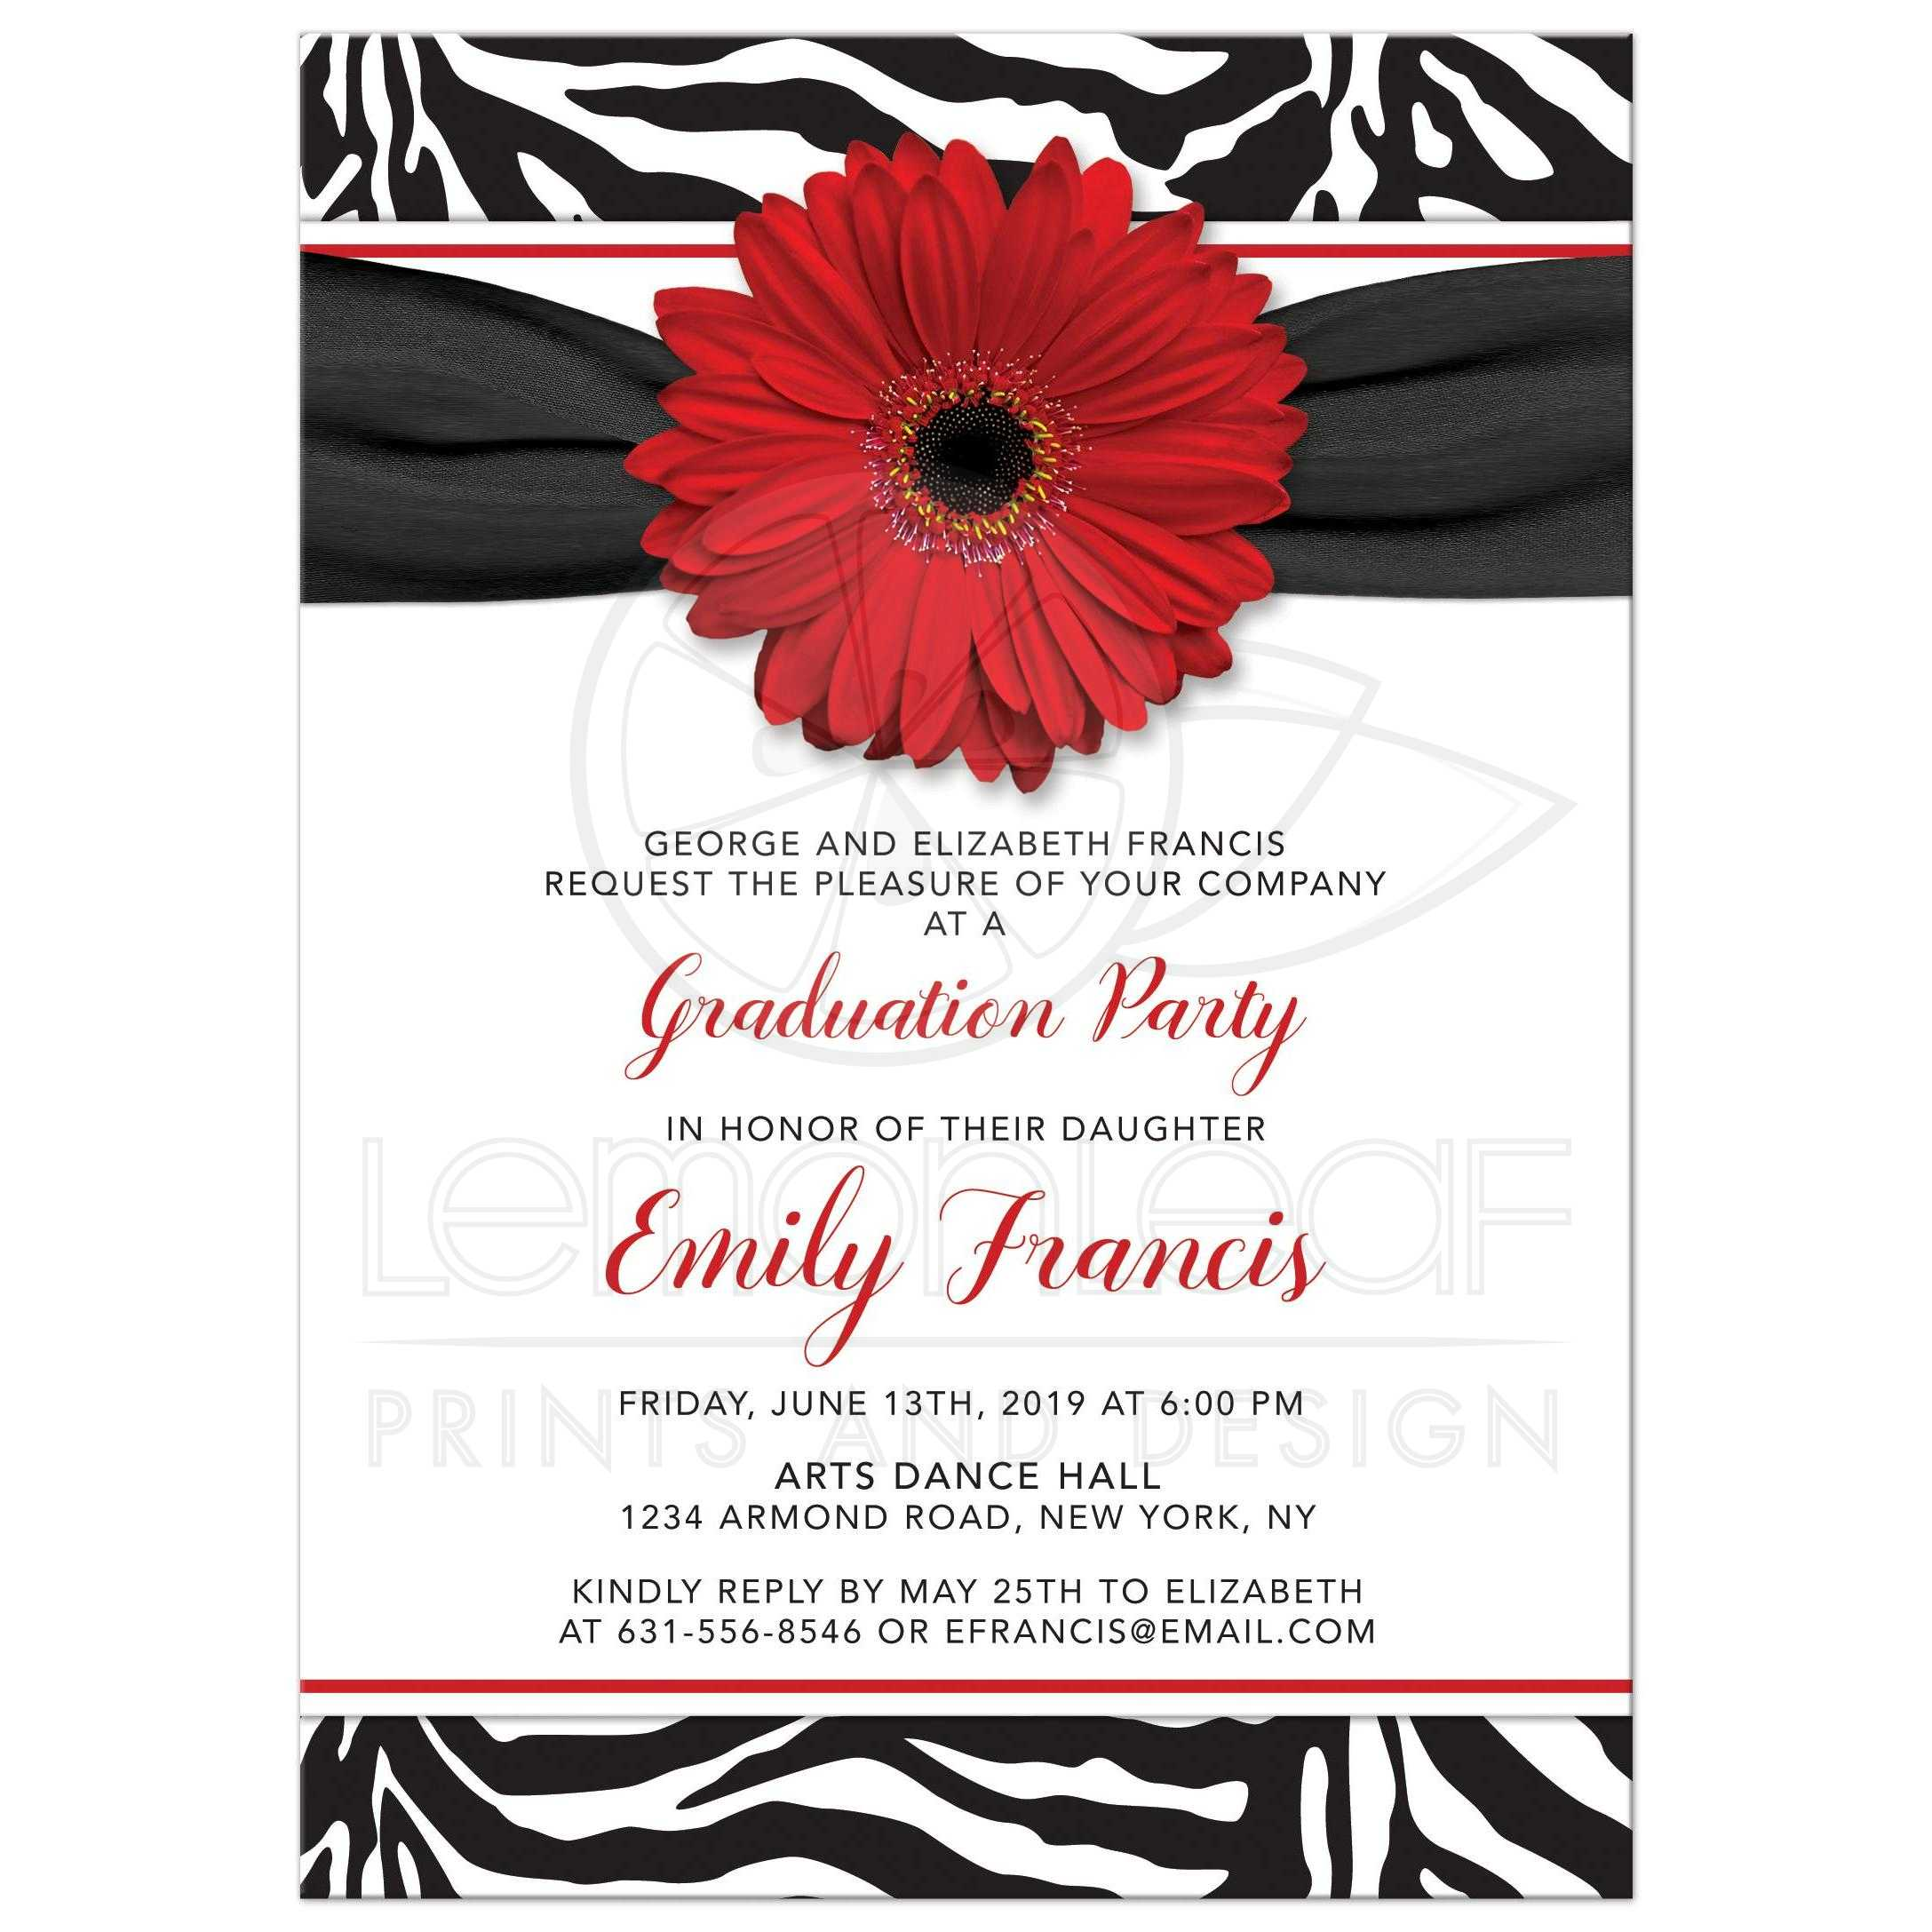 Chic Zebra Print Red Daisy Graduation Invitation